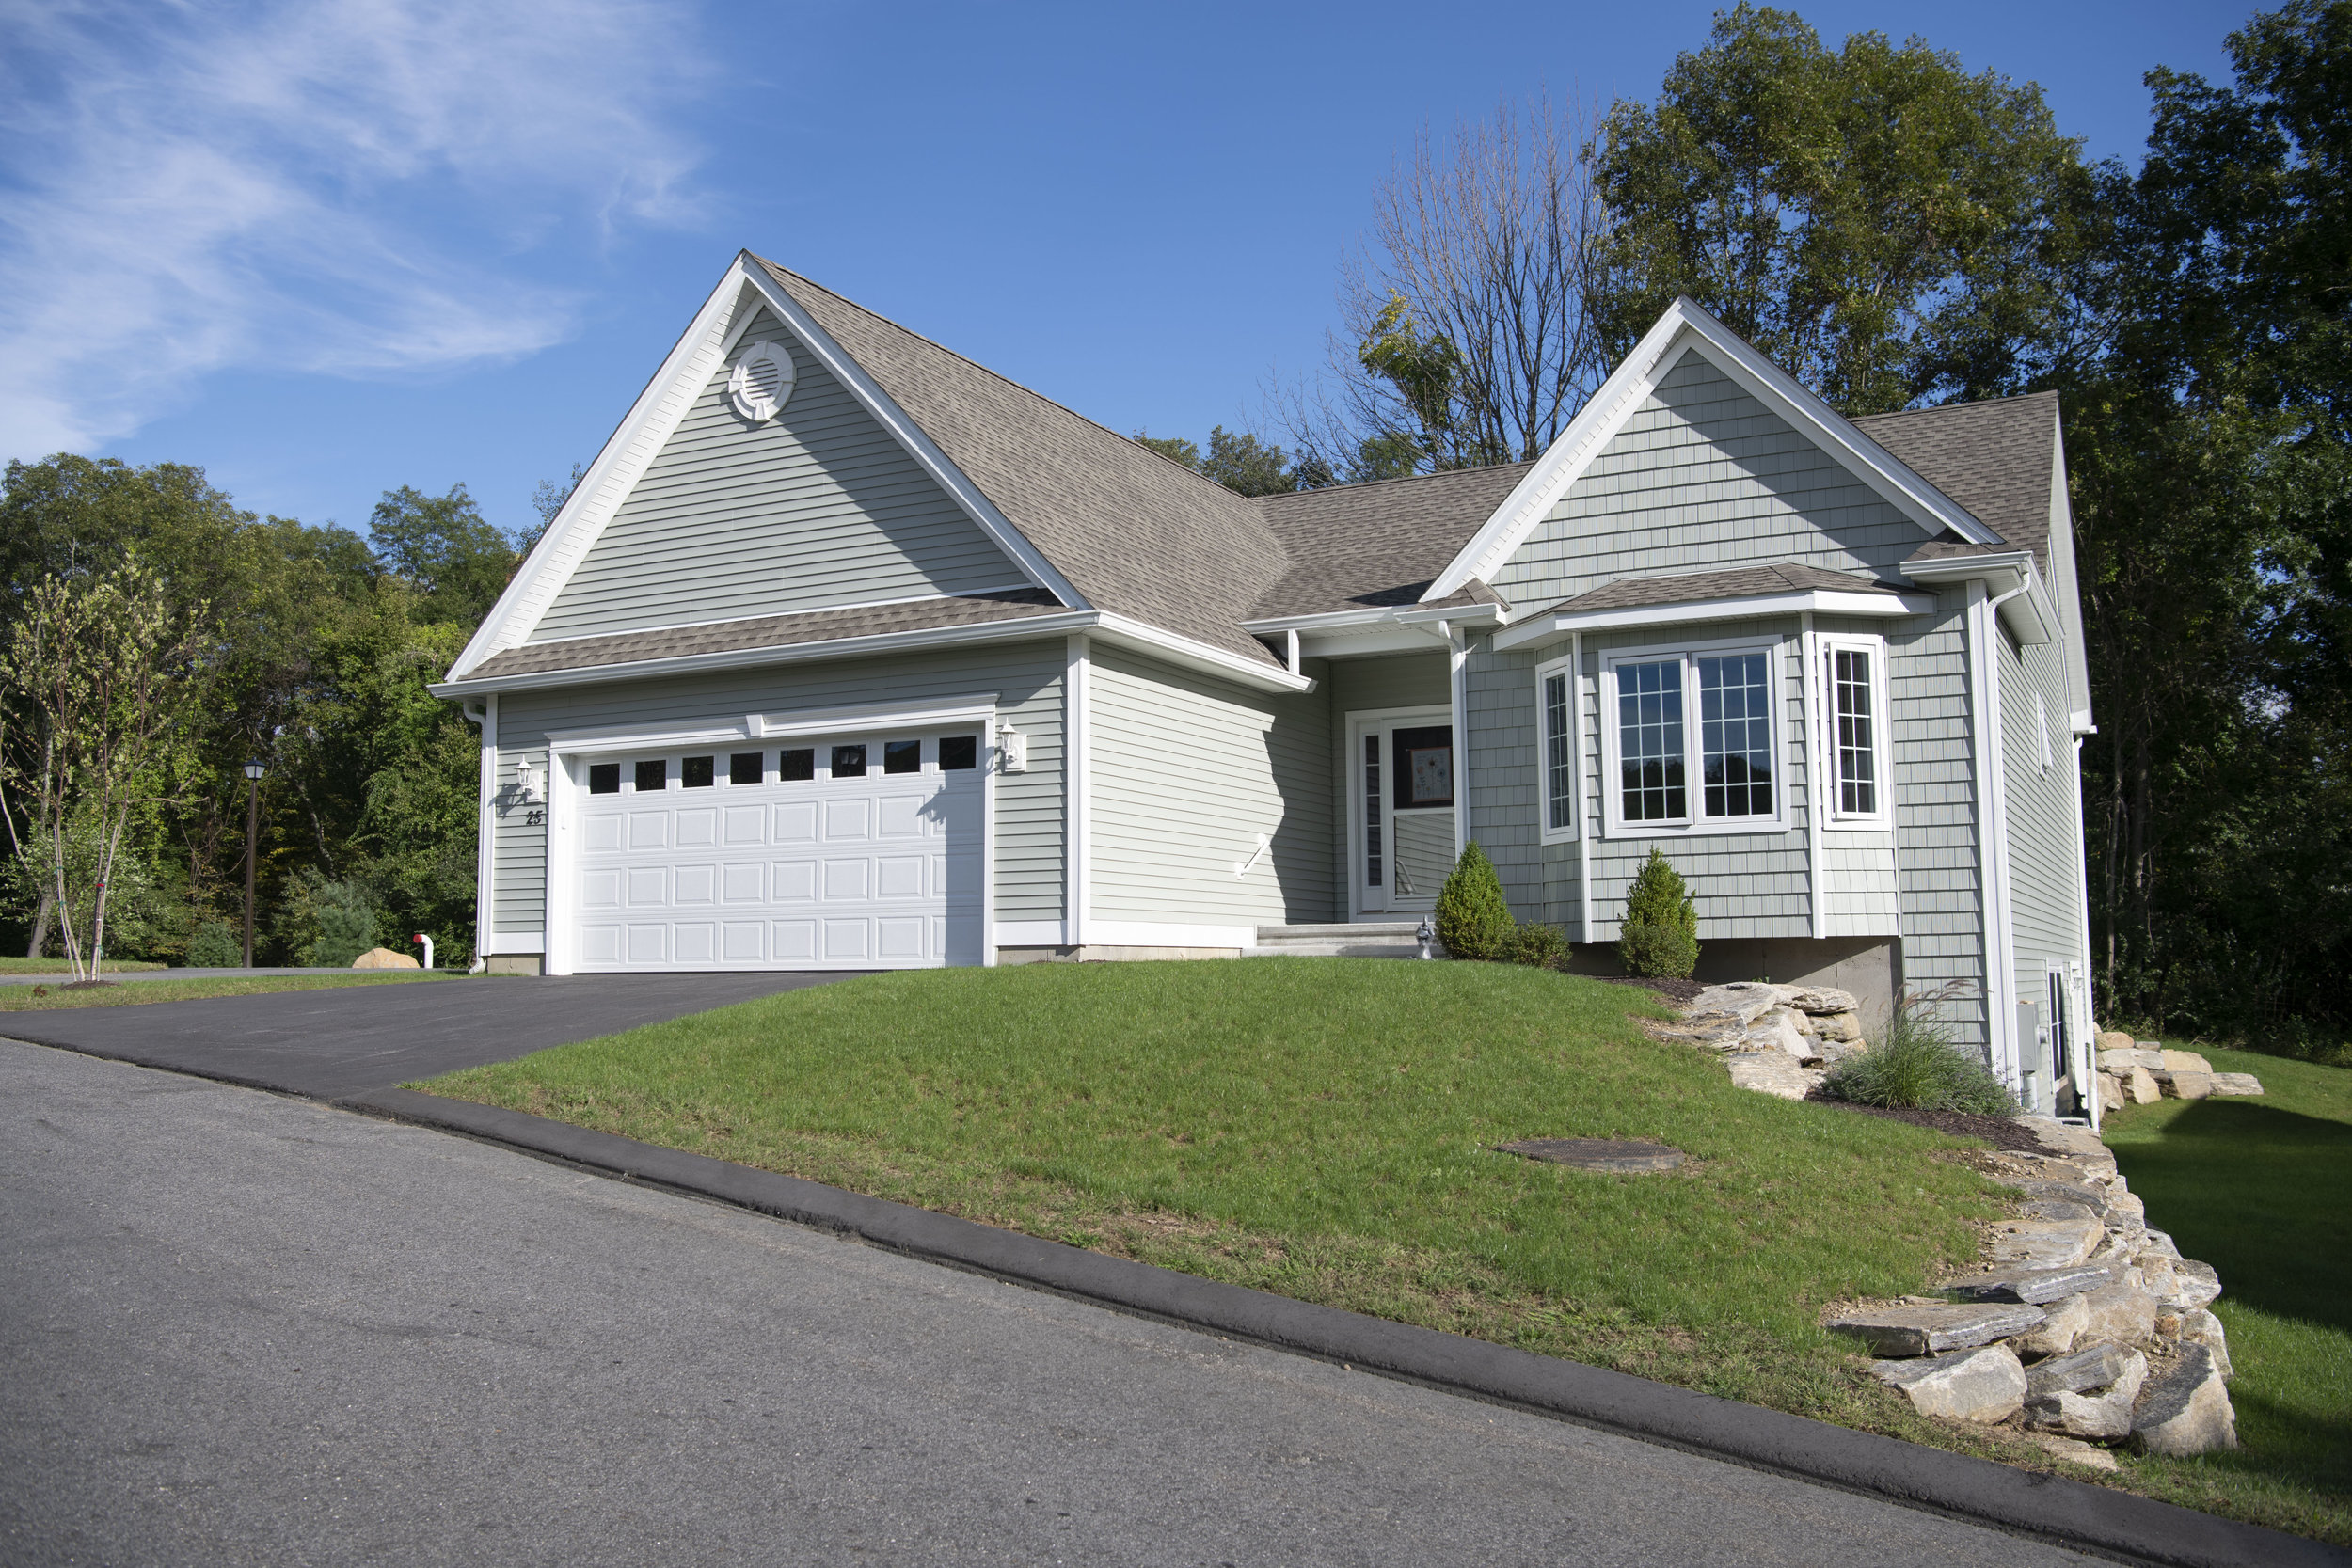 Bidwell Village - Bidwell Village is a 55+ community of freestanding homes located in the beautiful New England town of Coventry, CT just minutes...